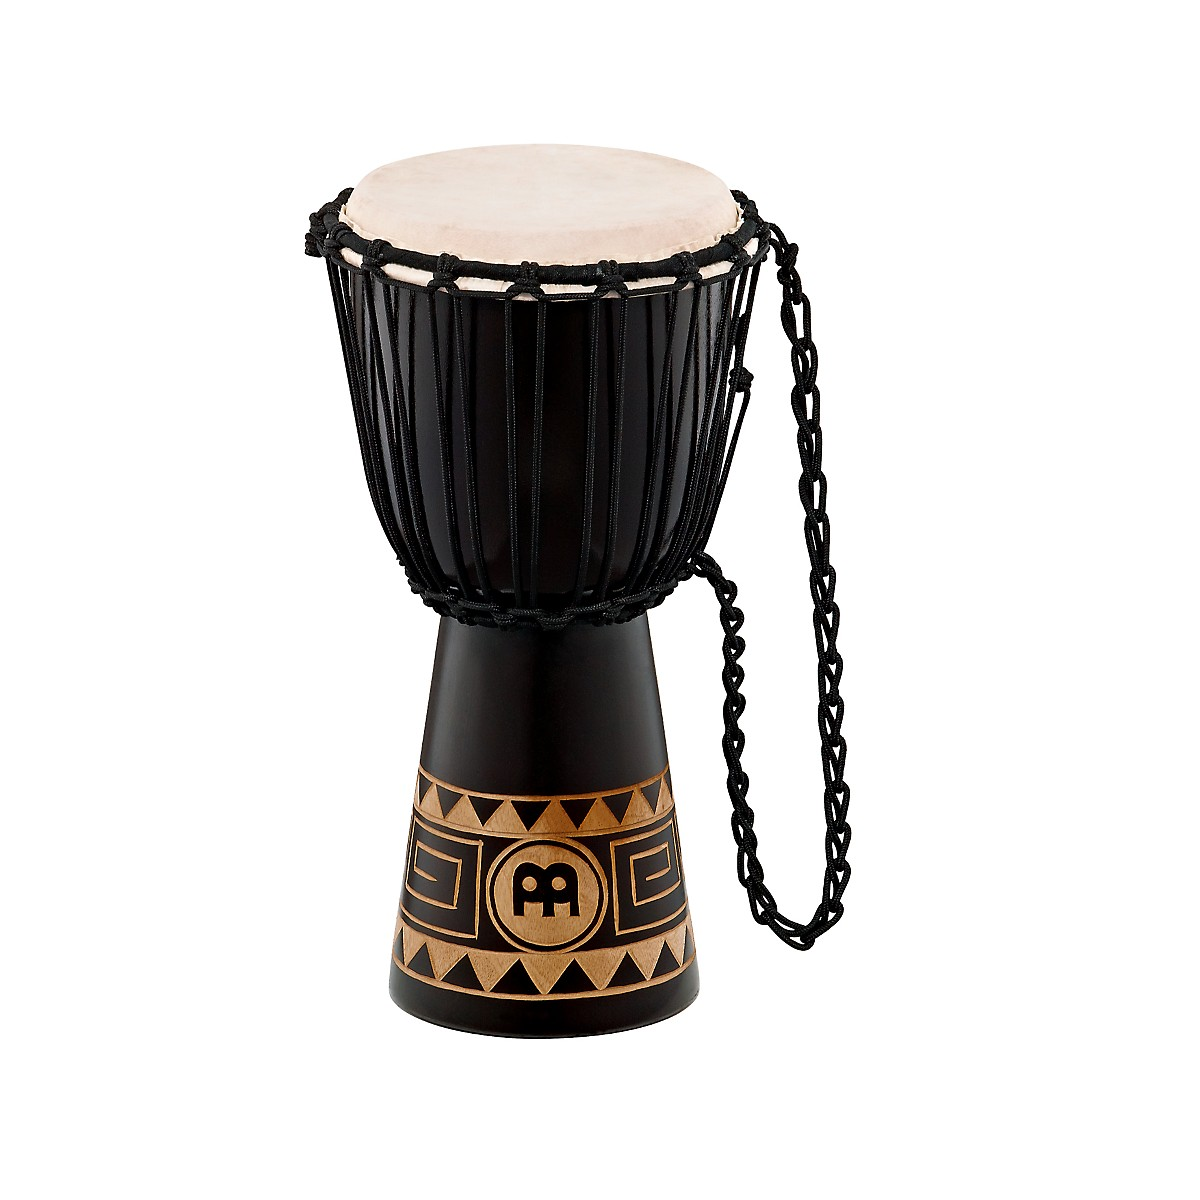 Meinl Congo Series Headliner Rope Tuned Wood Djembe